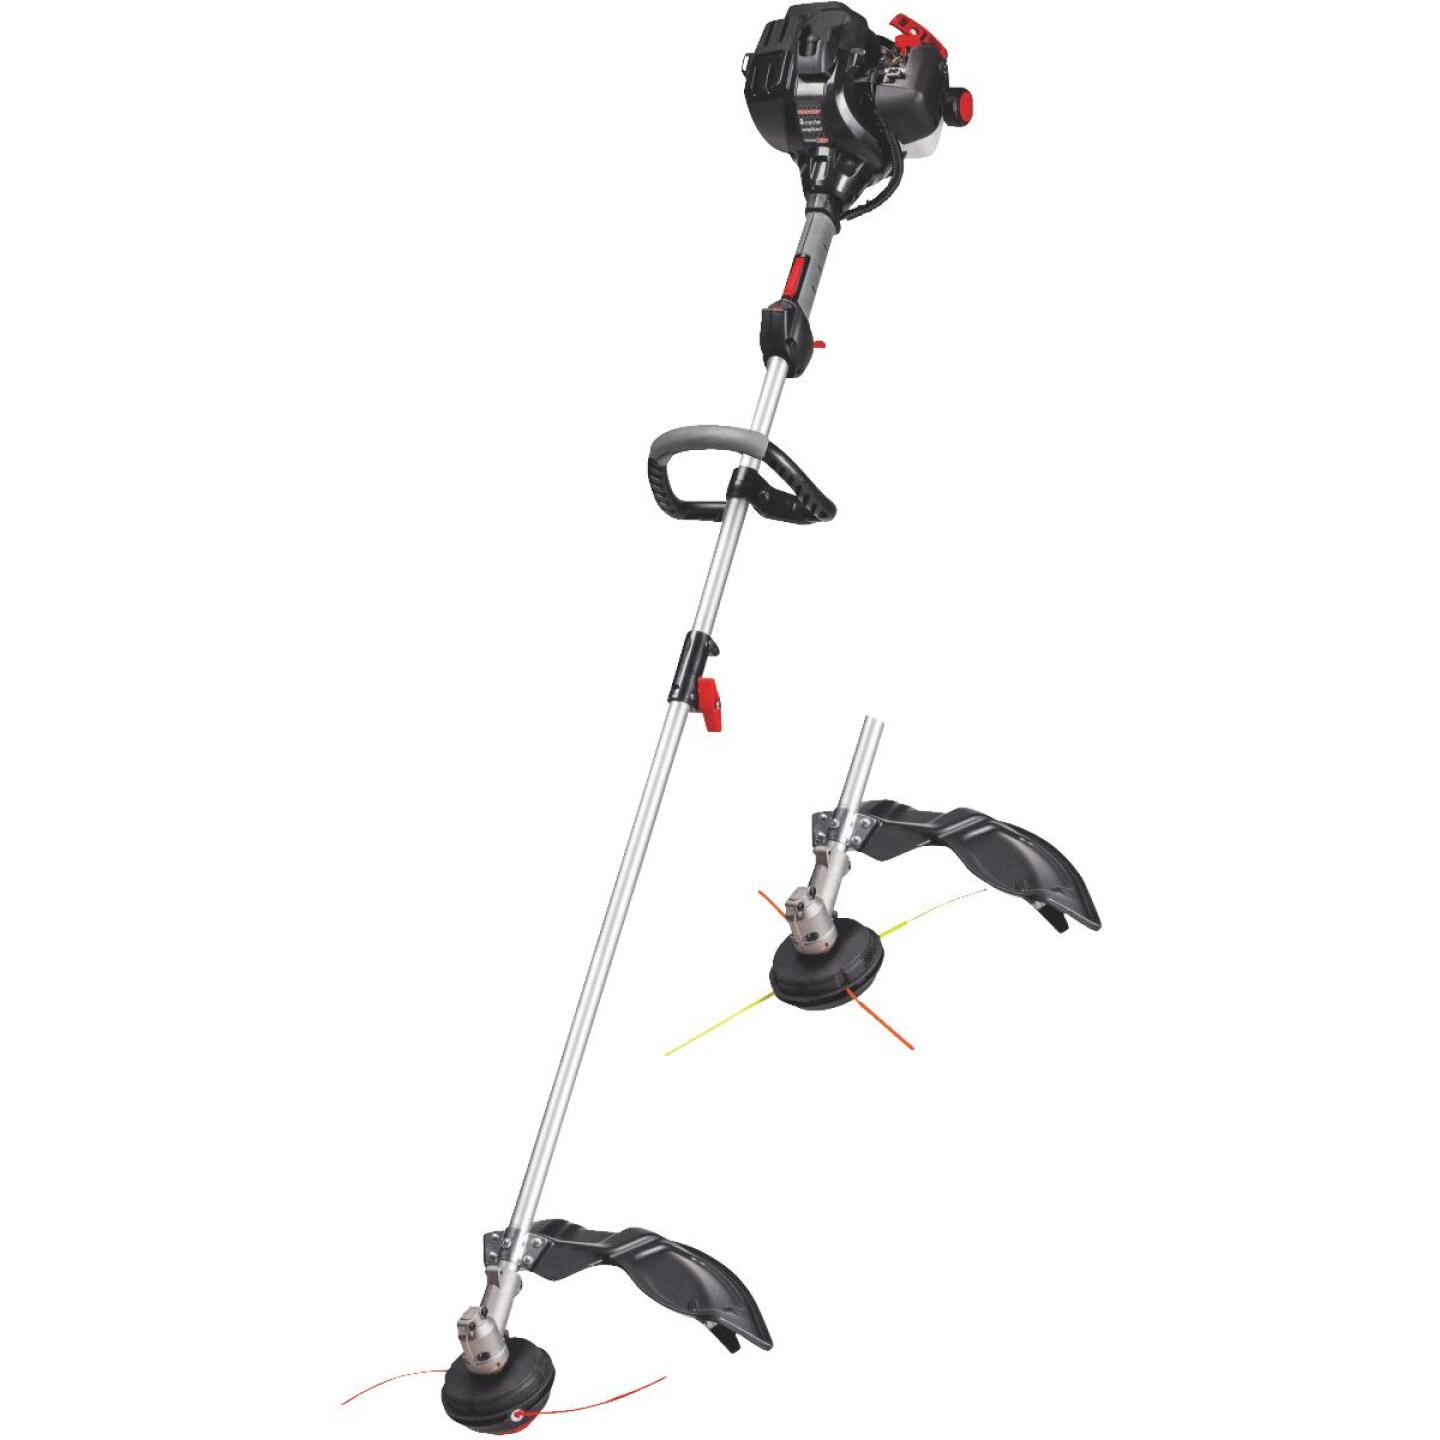 Troy-Bilt TB2044XP 18 In. 27CC 2-Cycle Straight Gas String Trimmer Image 1